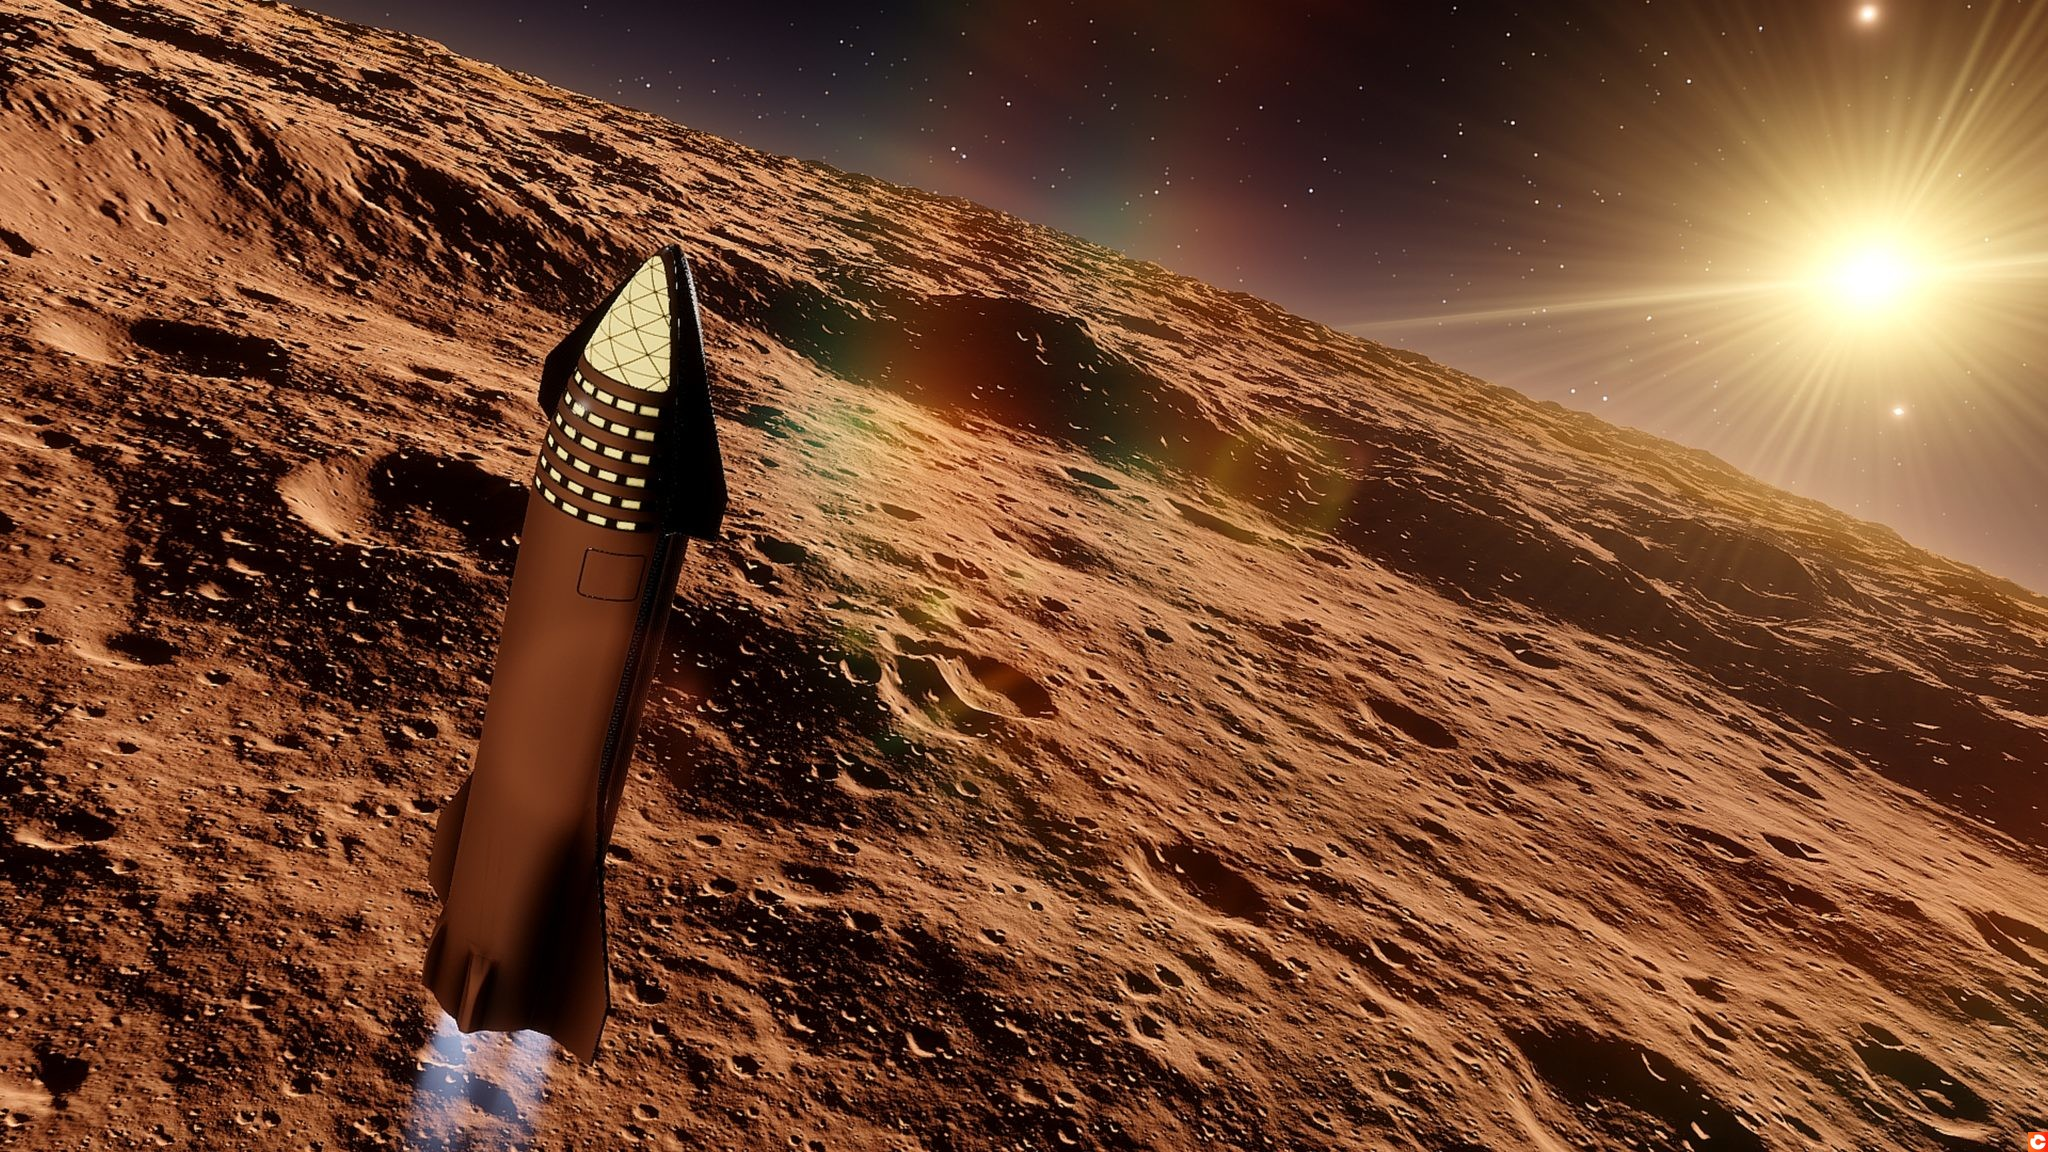 SpaceX Starship in orbit of the alien planet, SpaceX Concept Spacecraft in orbit of the Earth 3d render